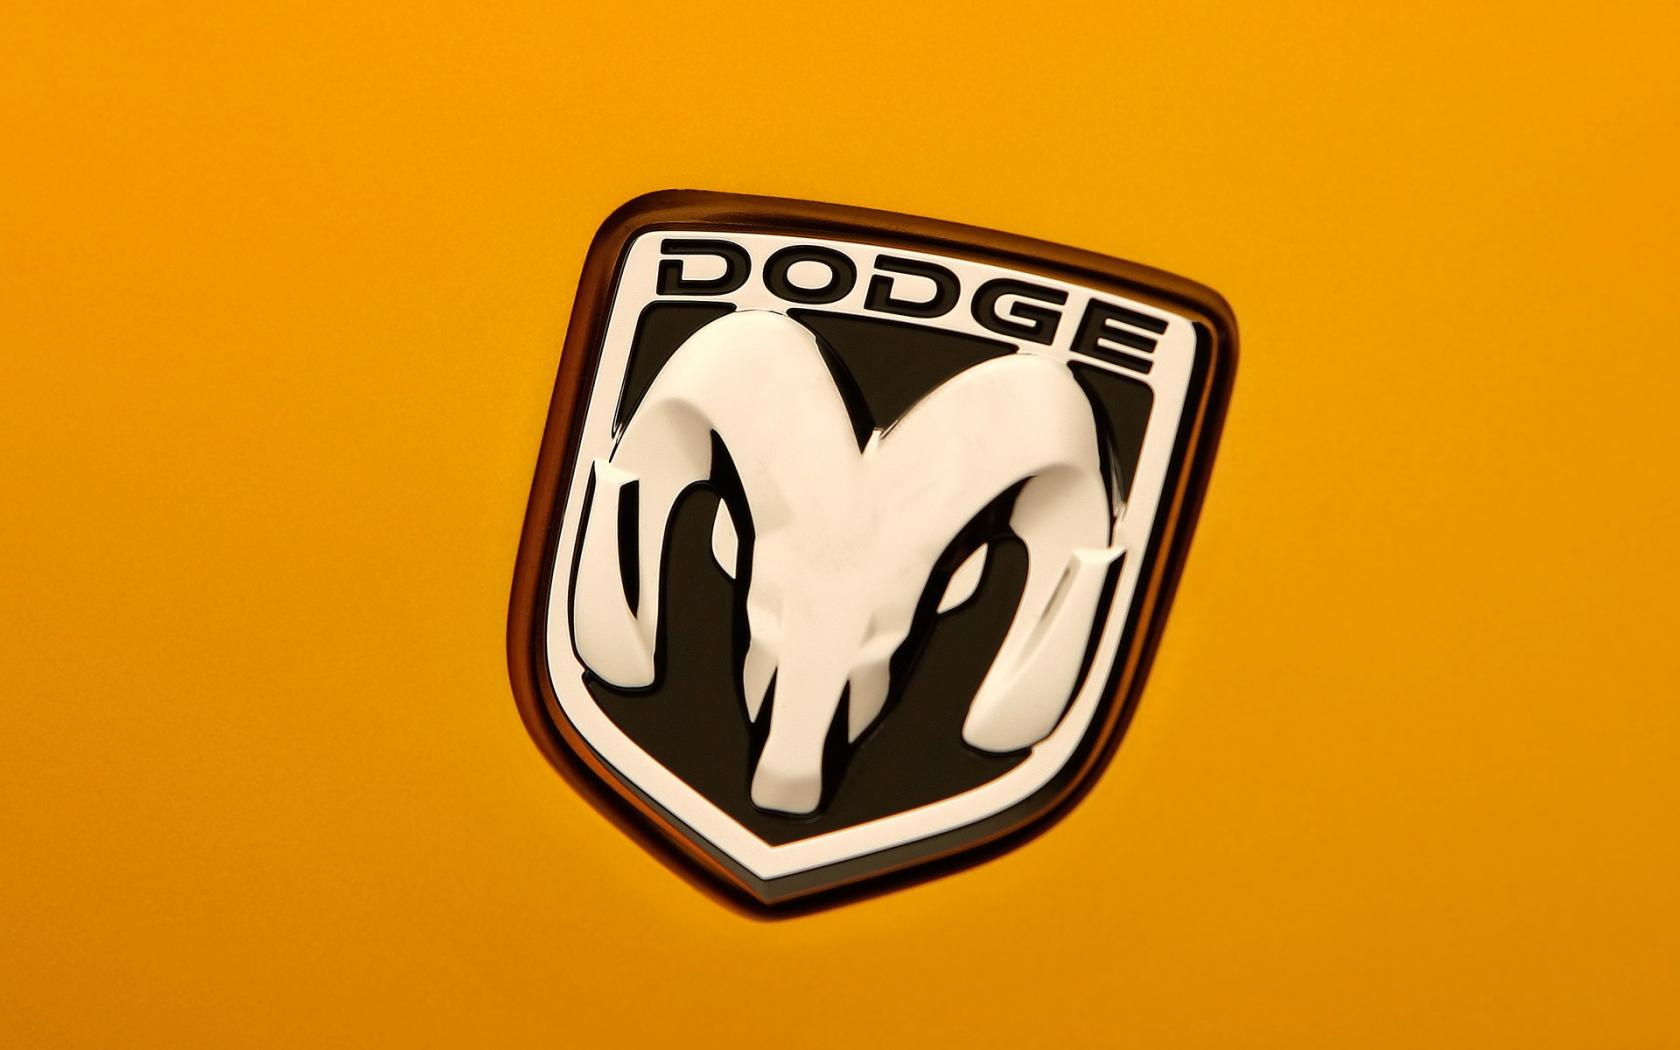 2007 Dodge Demon Roadster Concept Emblem 1680x1050